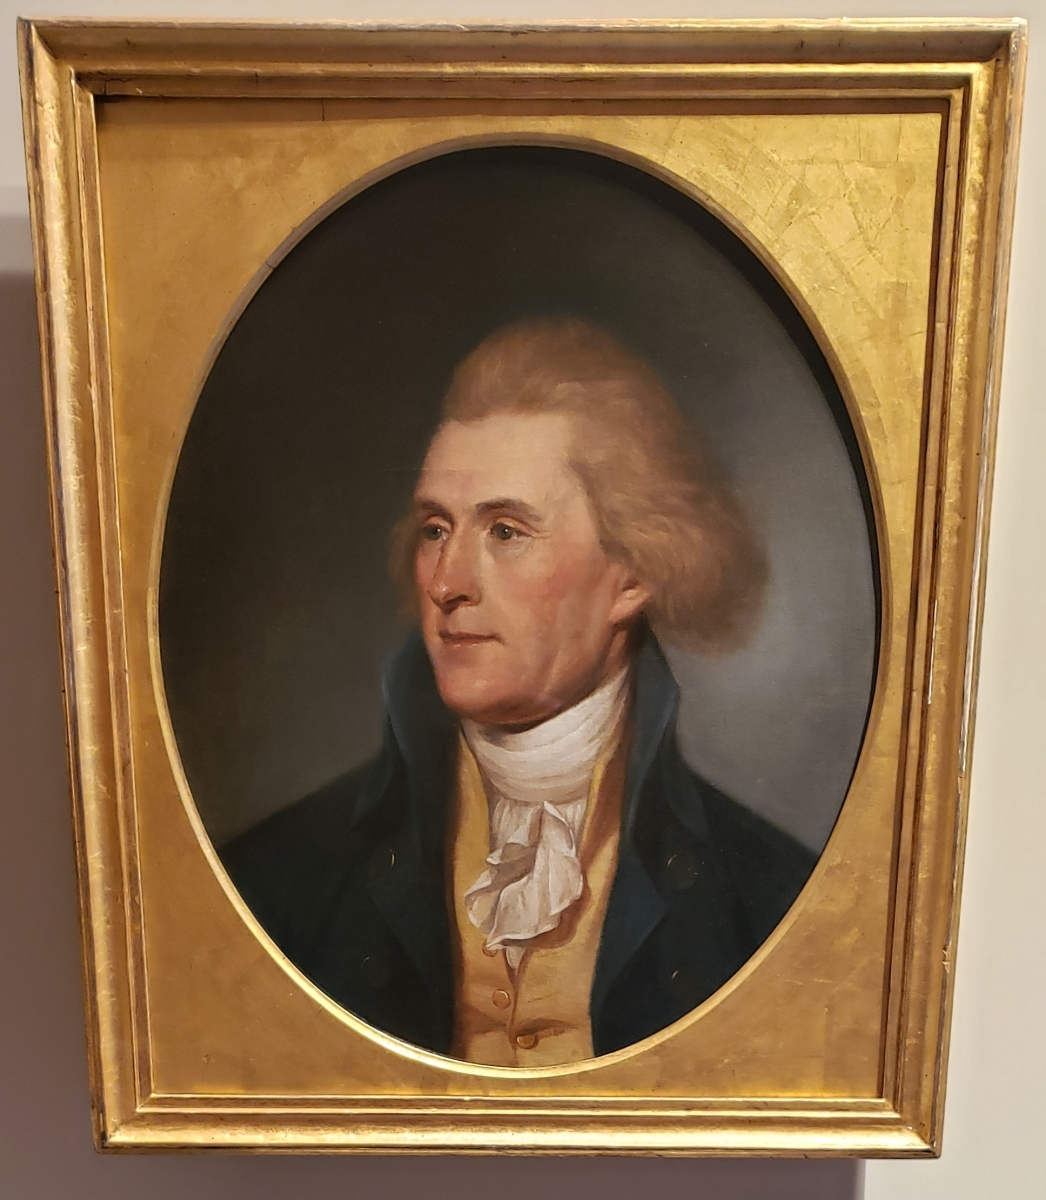 Portrait of Thomas Jefferson hanging in the Second Bank of the United States Portrait Gallery